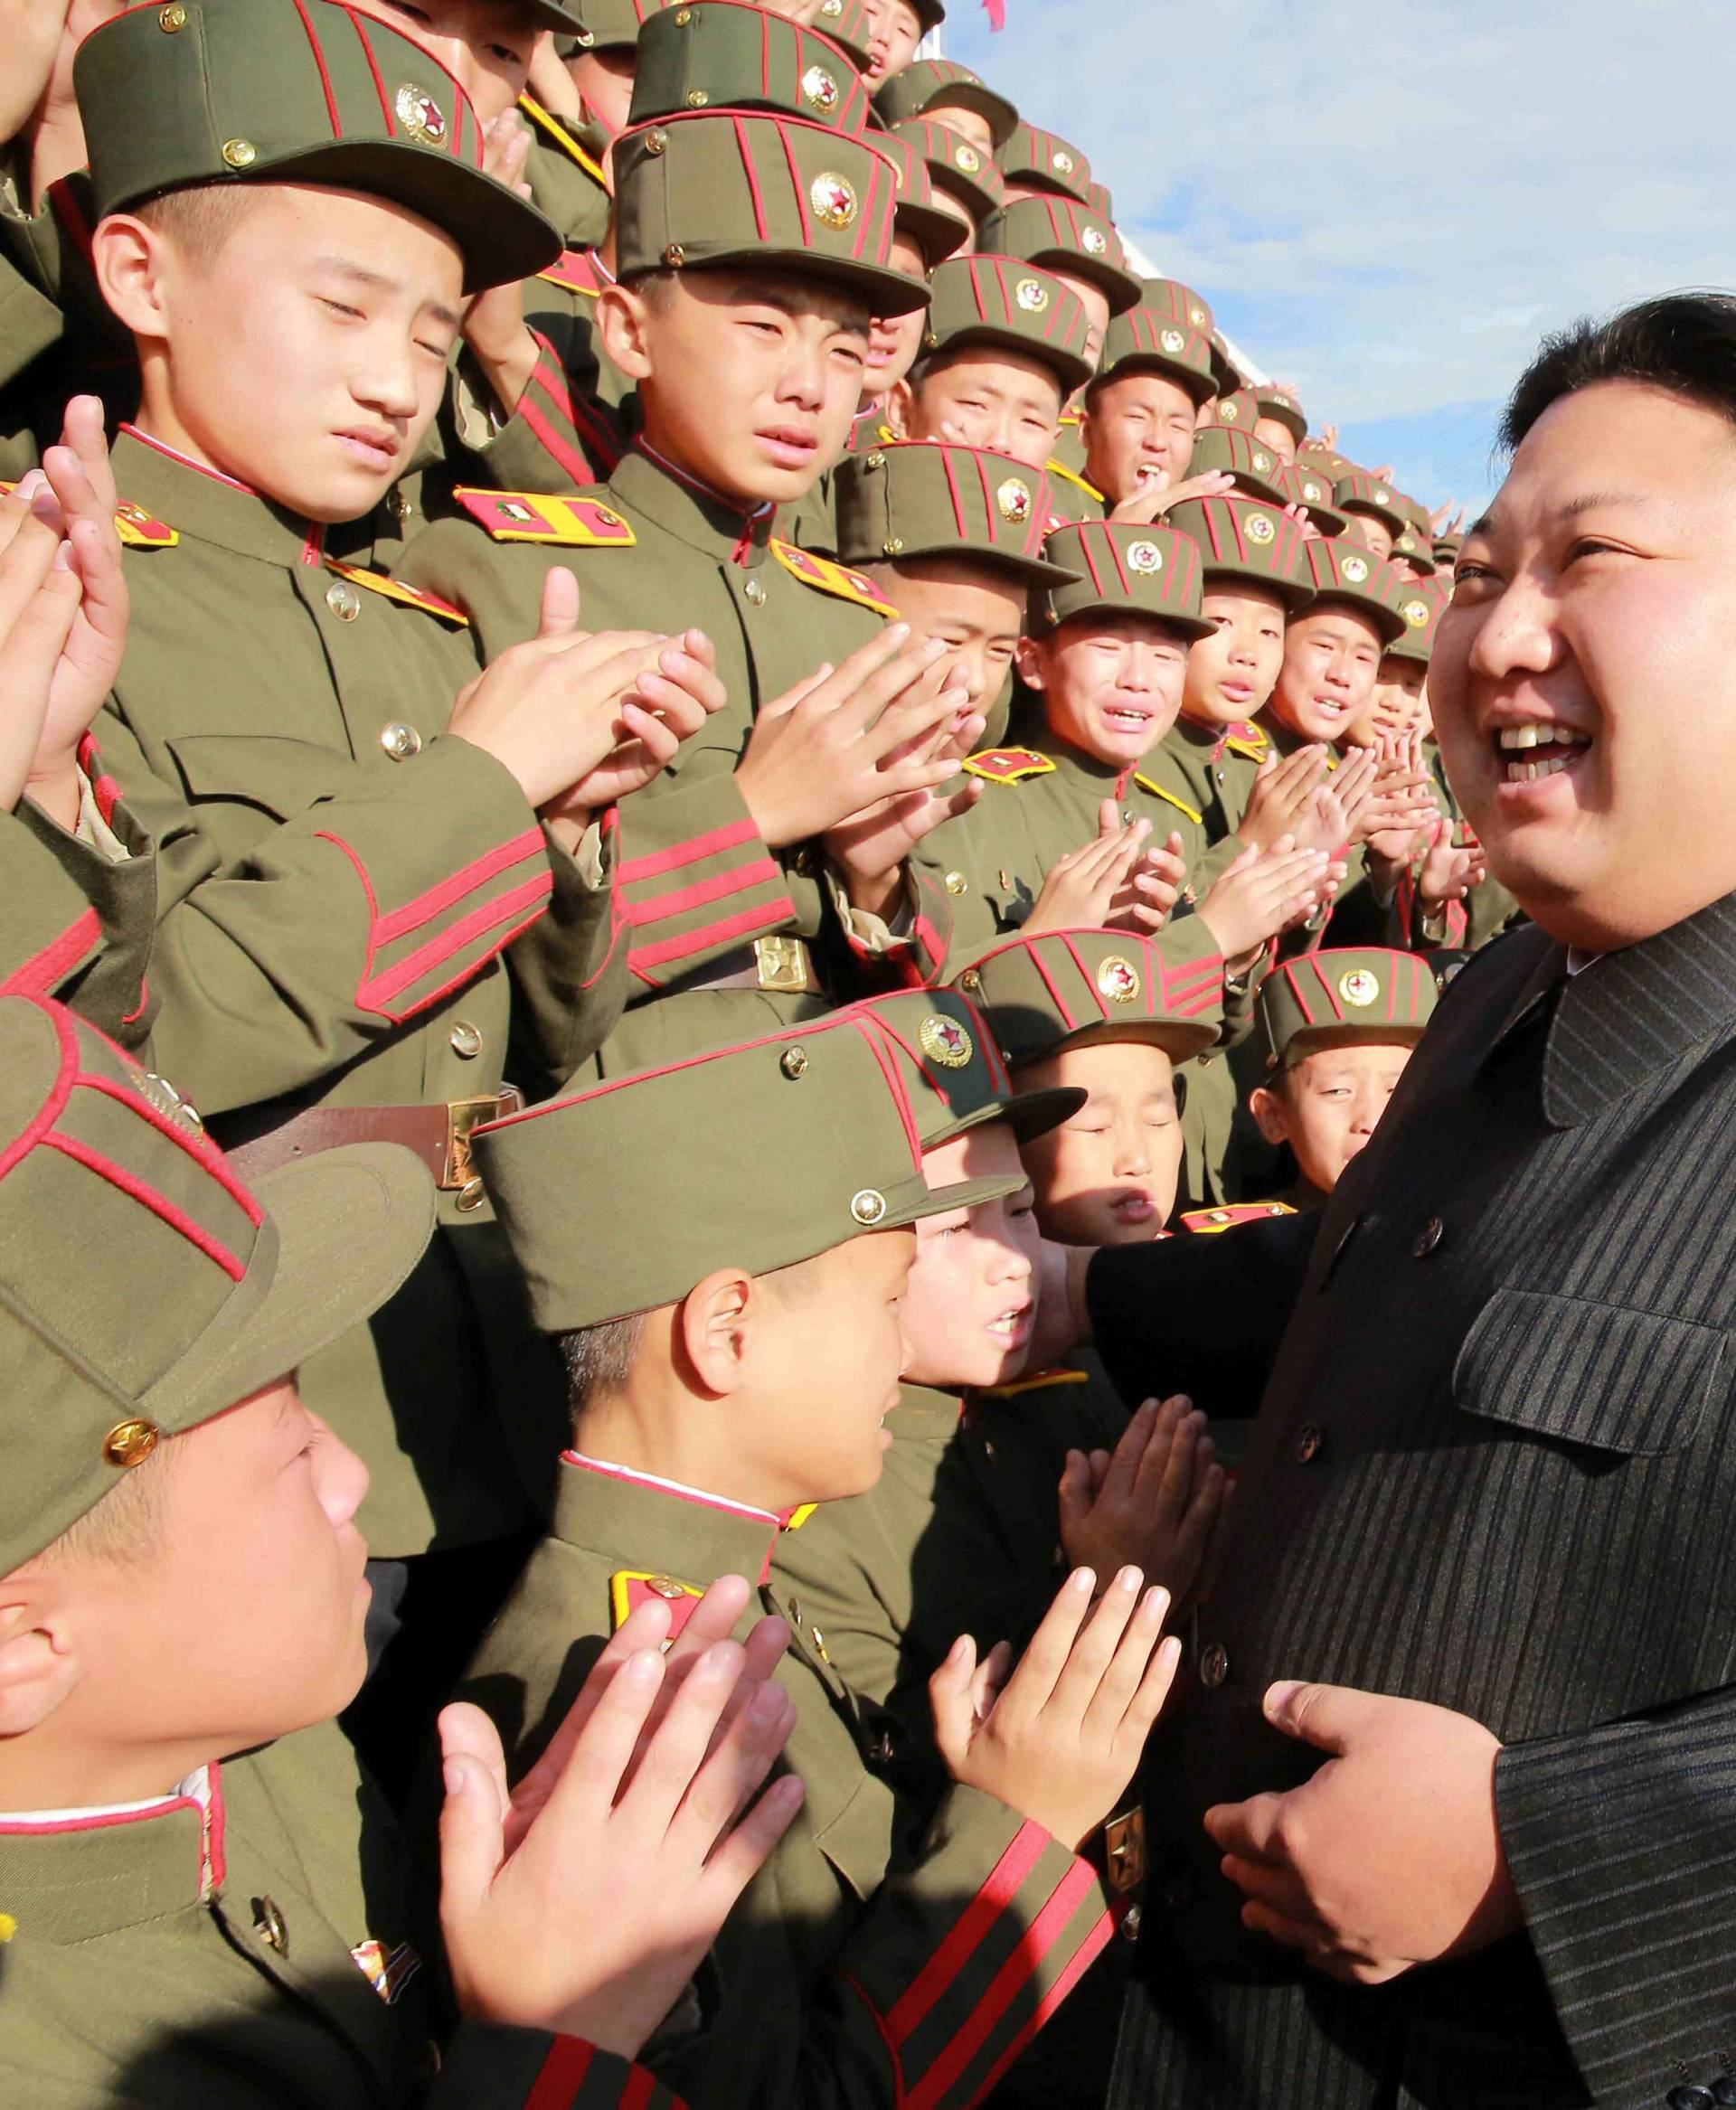 North Korea's leader Kim Jong Un visits the Mangyongdae Revolutionary Academy on its 70th anniversary